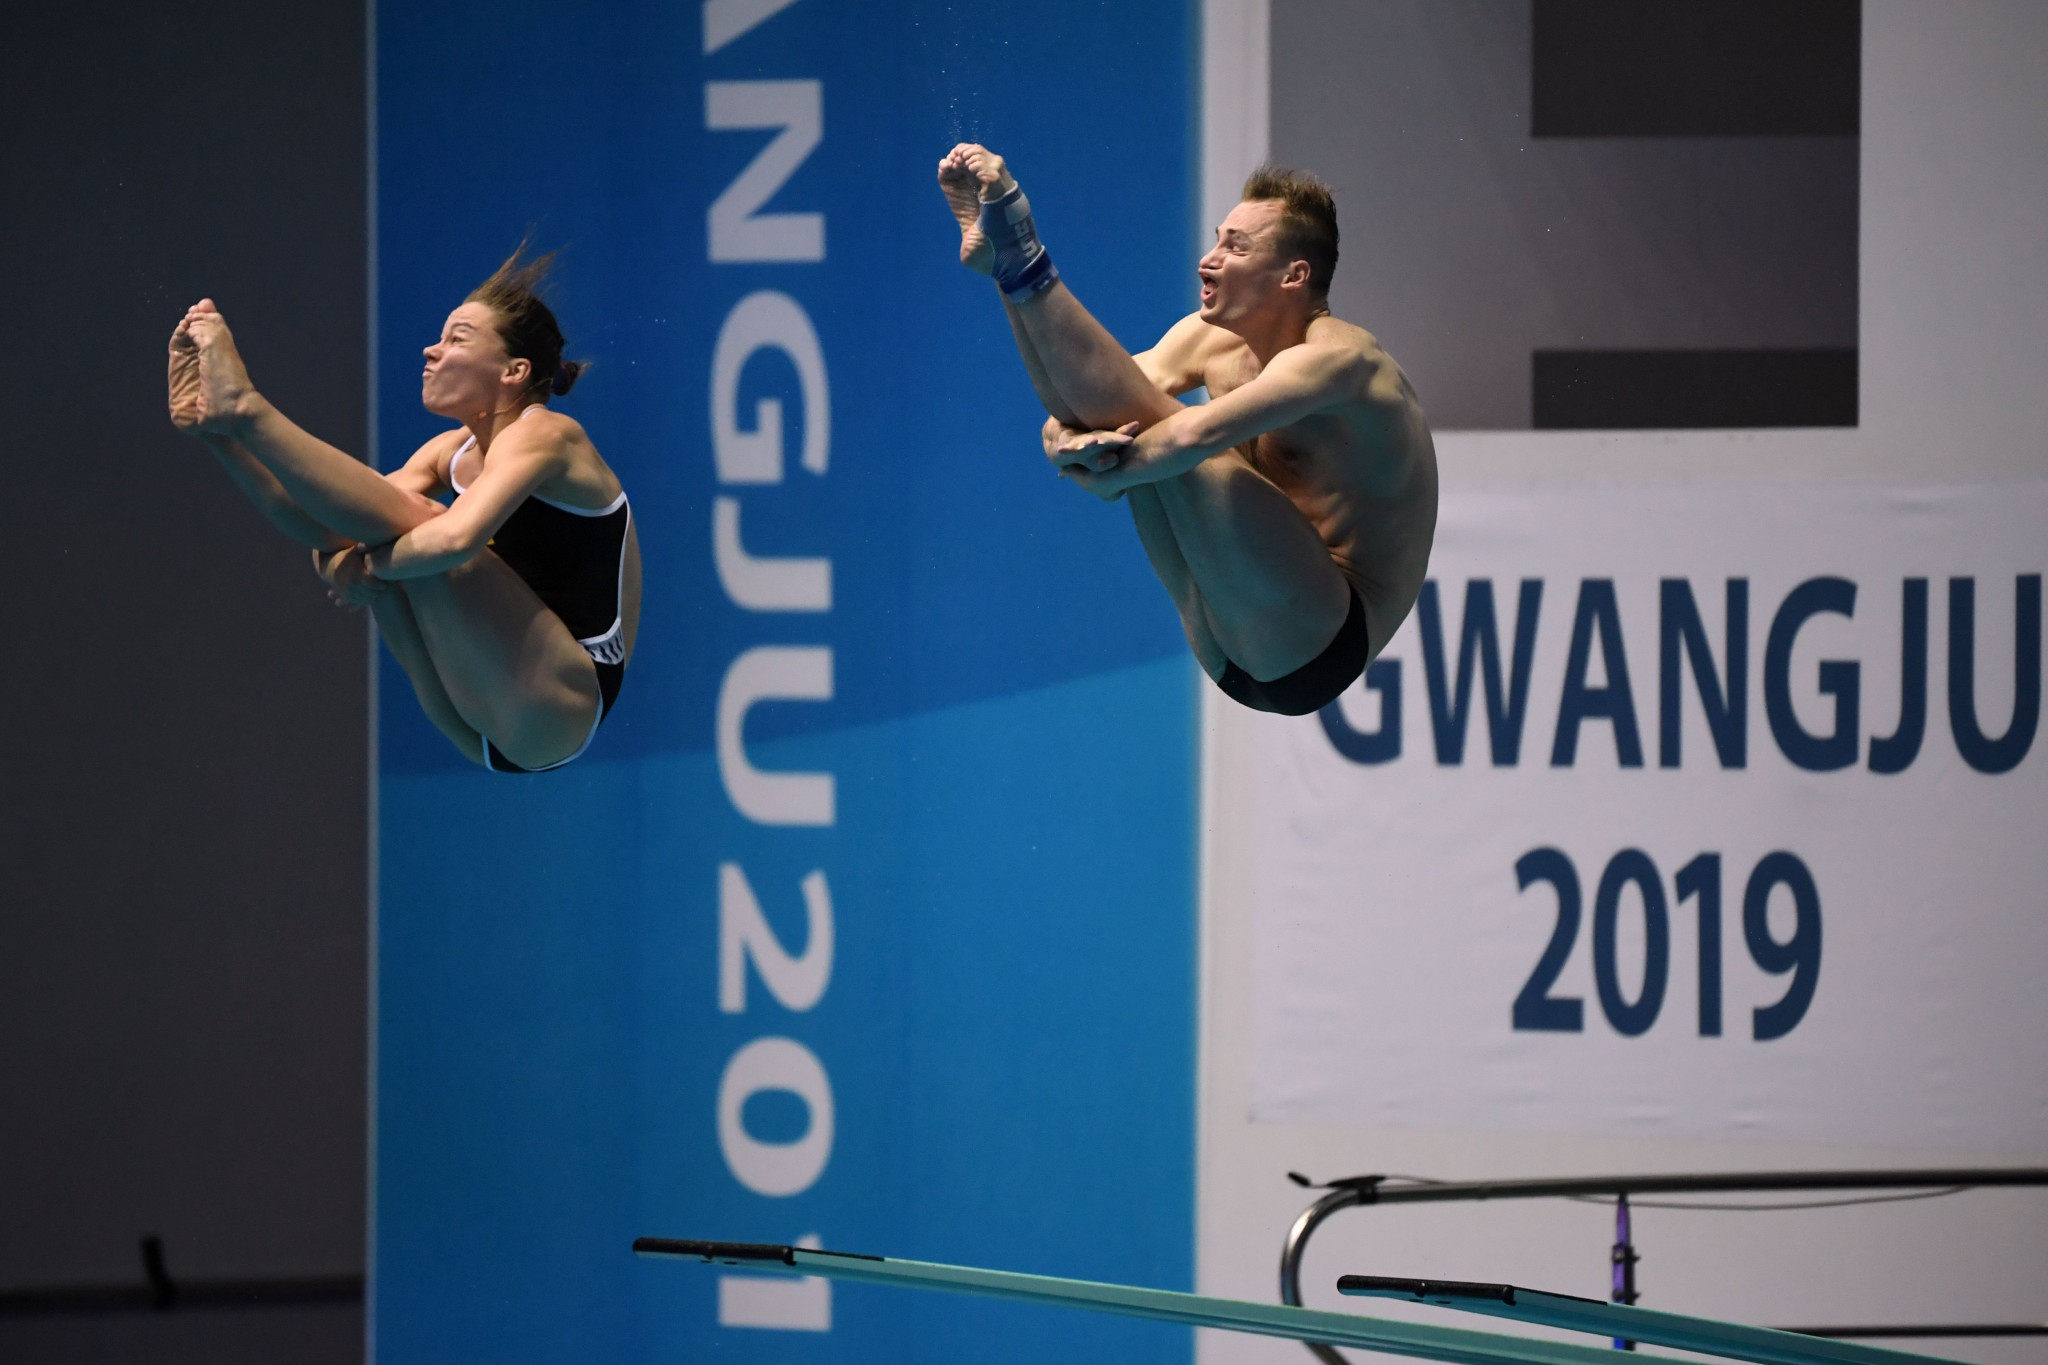 Hosts Ukraine claim two gold medals at European Diving Championships